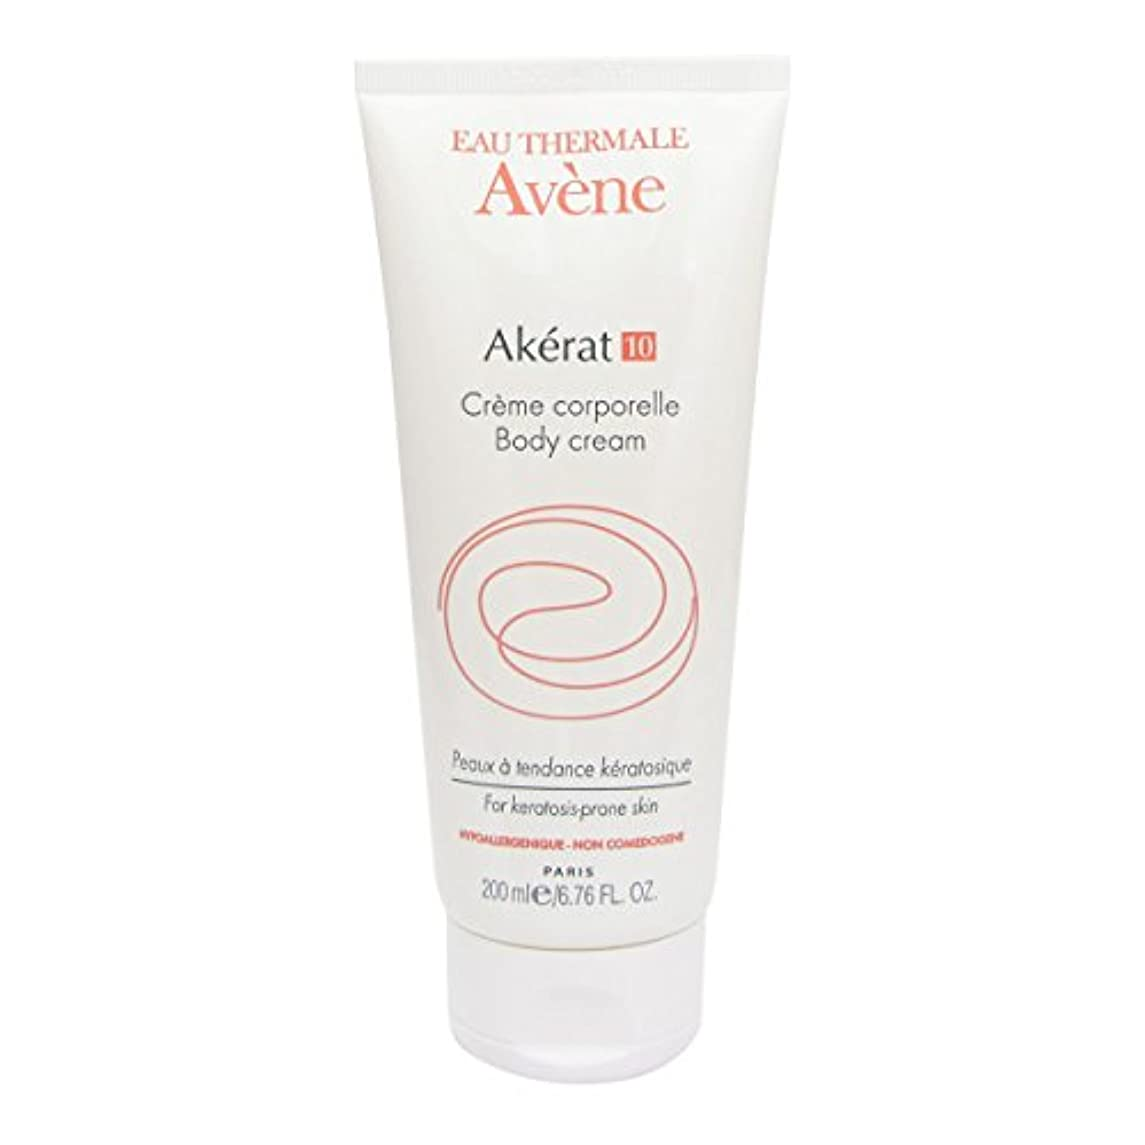 Avene Akerat 10 Body Cream 200ml [並行輸入品]